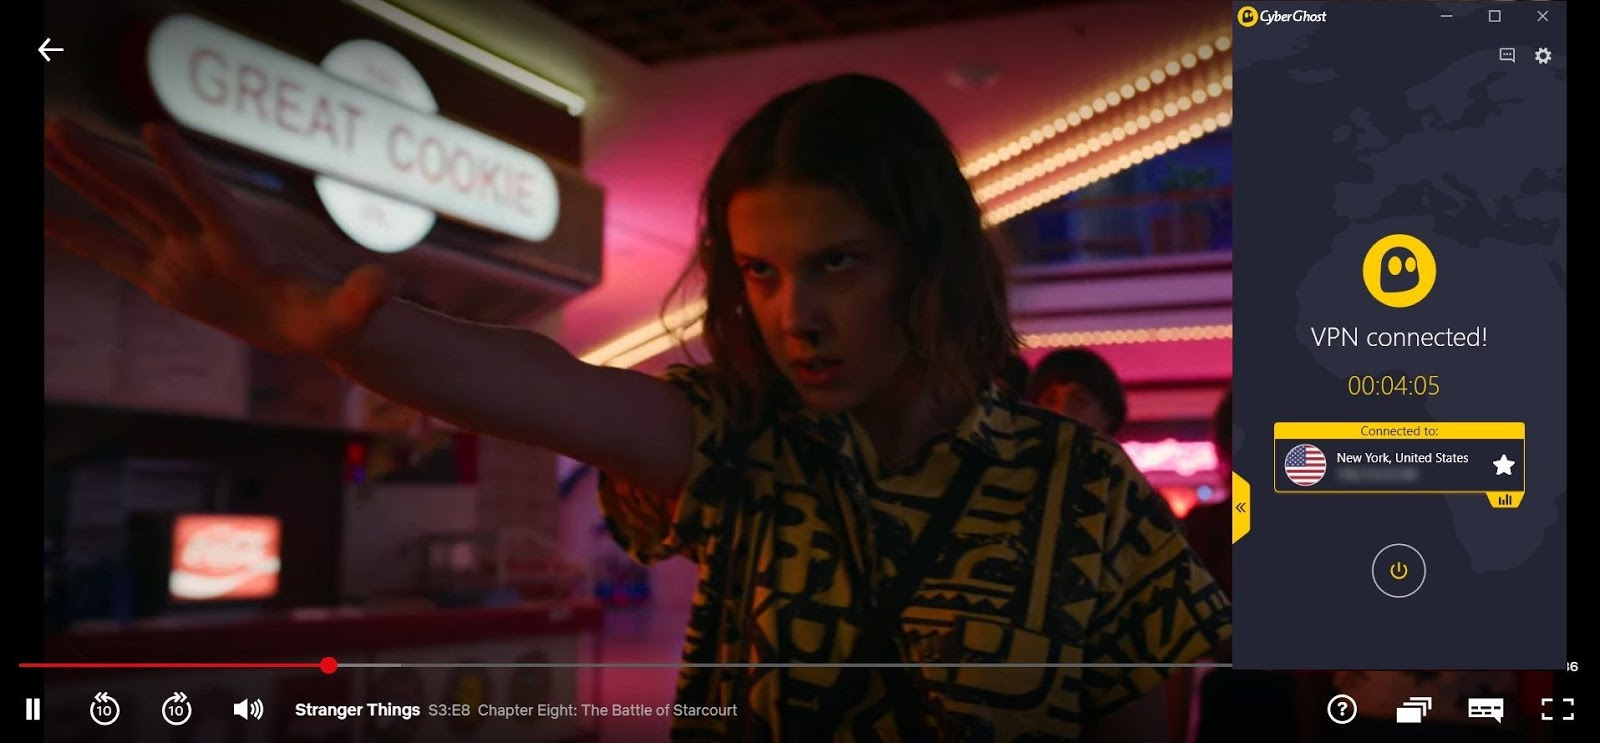 Screenshot of CyberGhost connected to US server with Stranger Things streaming on US Netflix